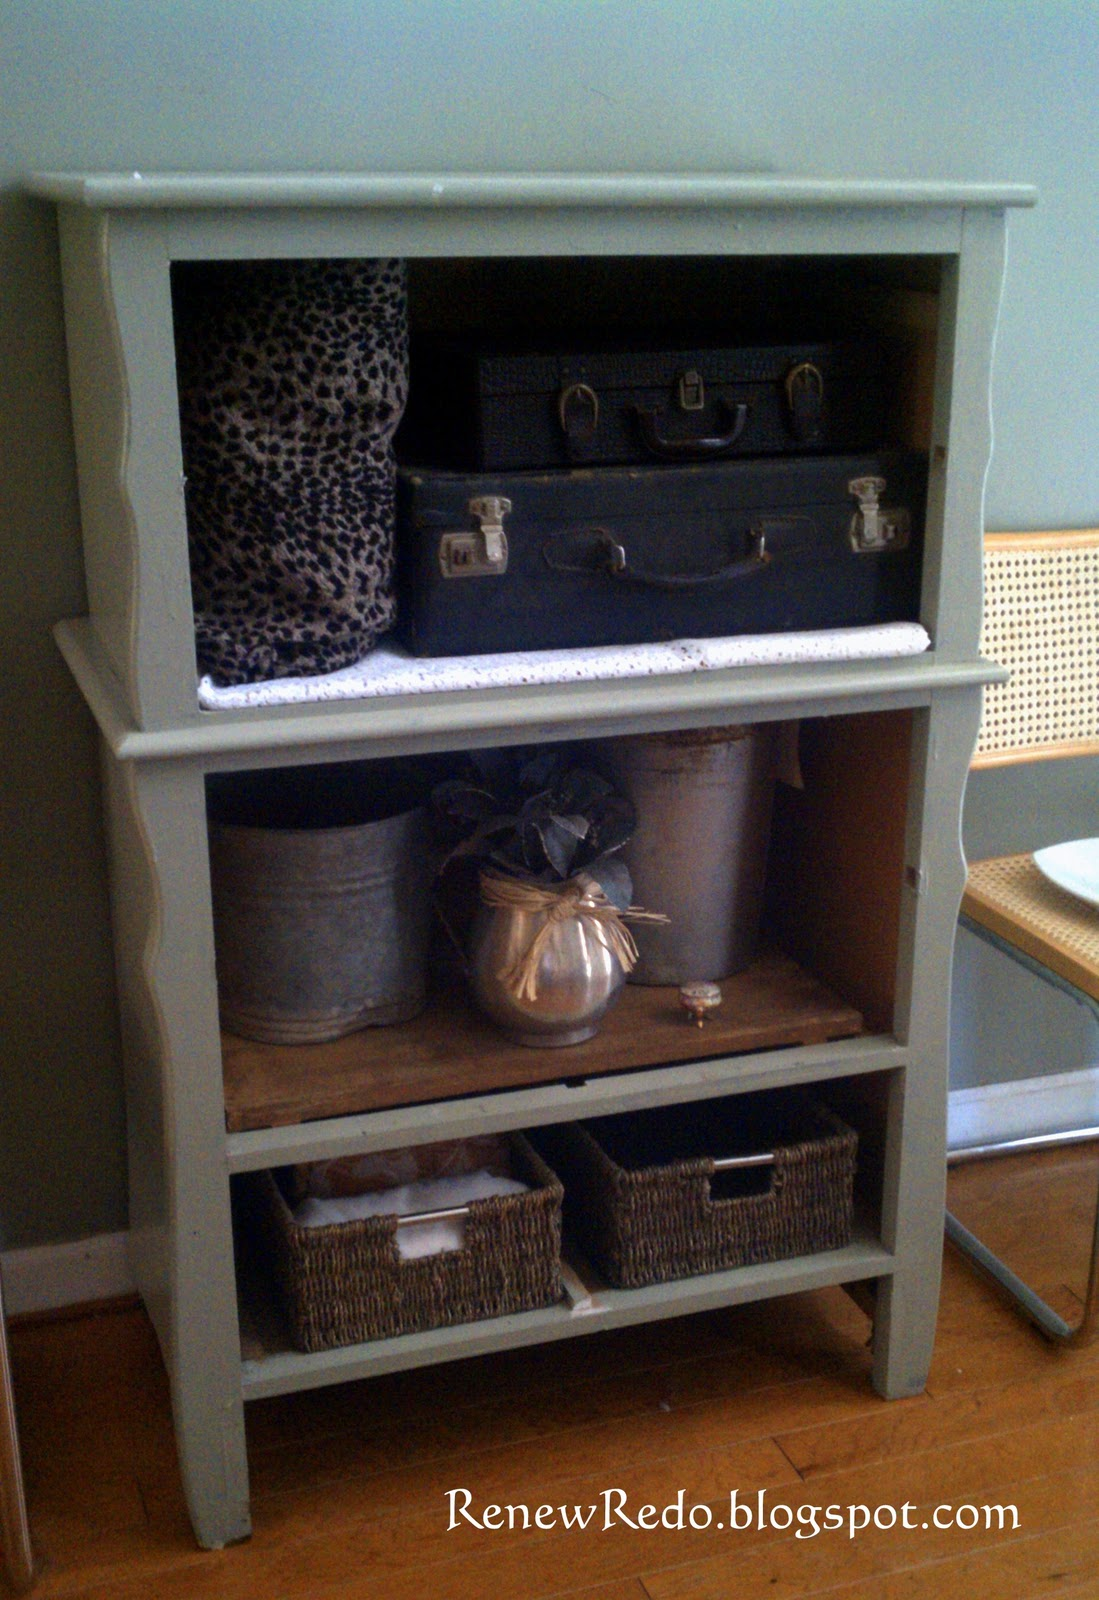 Excellent ReNew ReDo!: Repurposed Chest Of Drawers DQ94